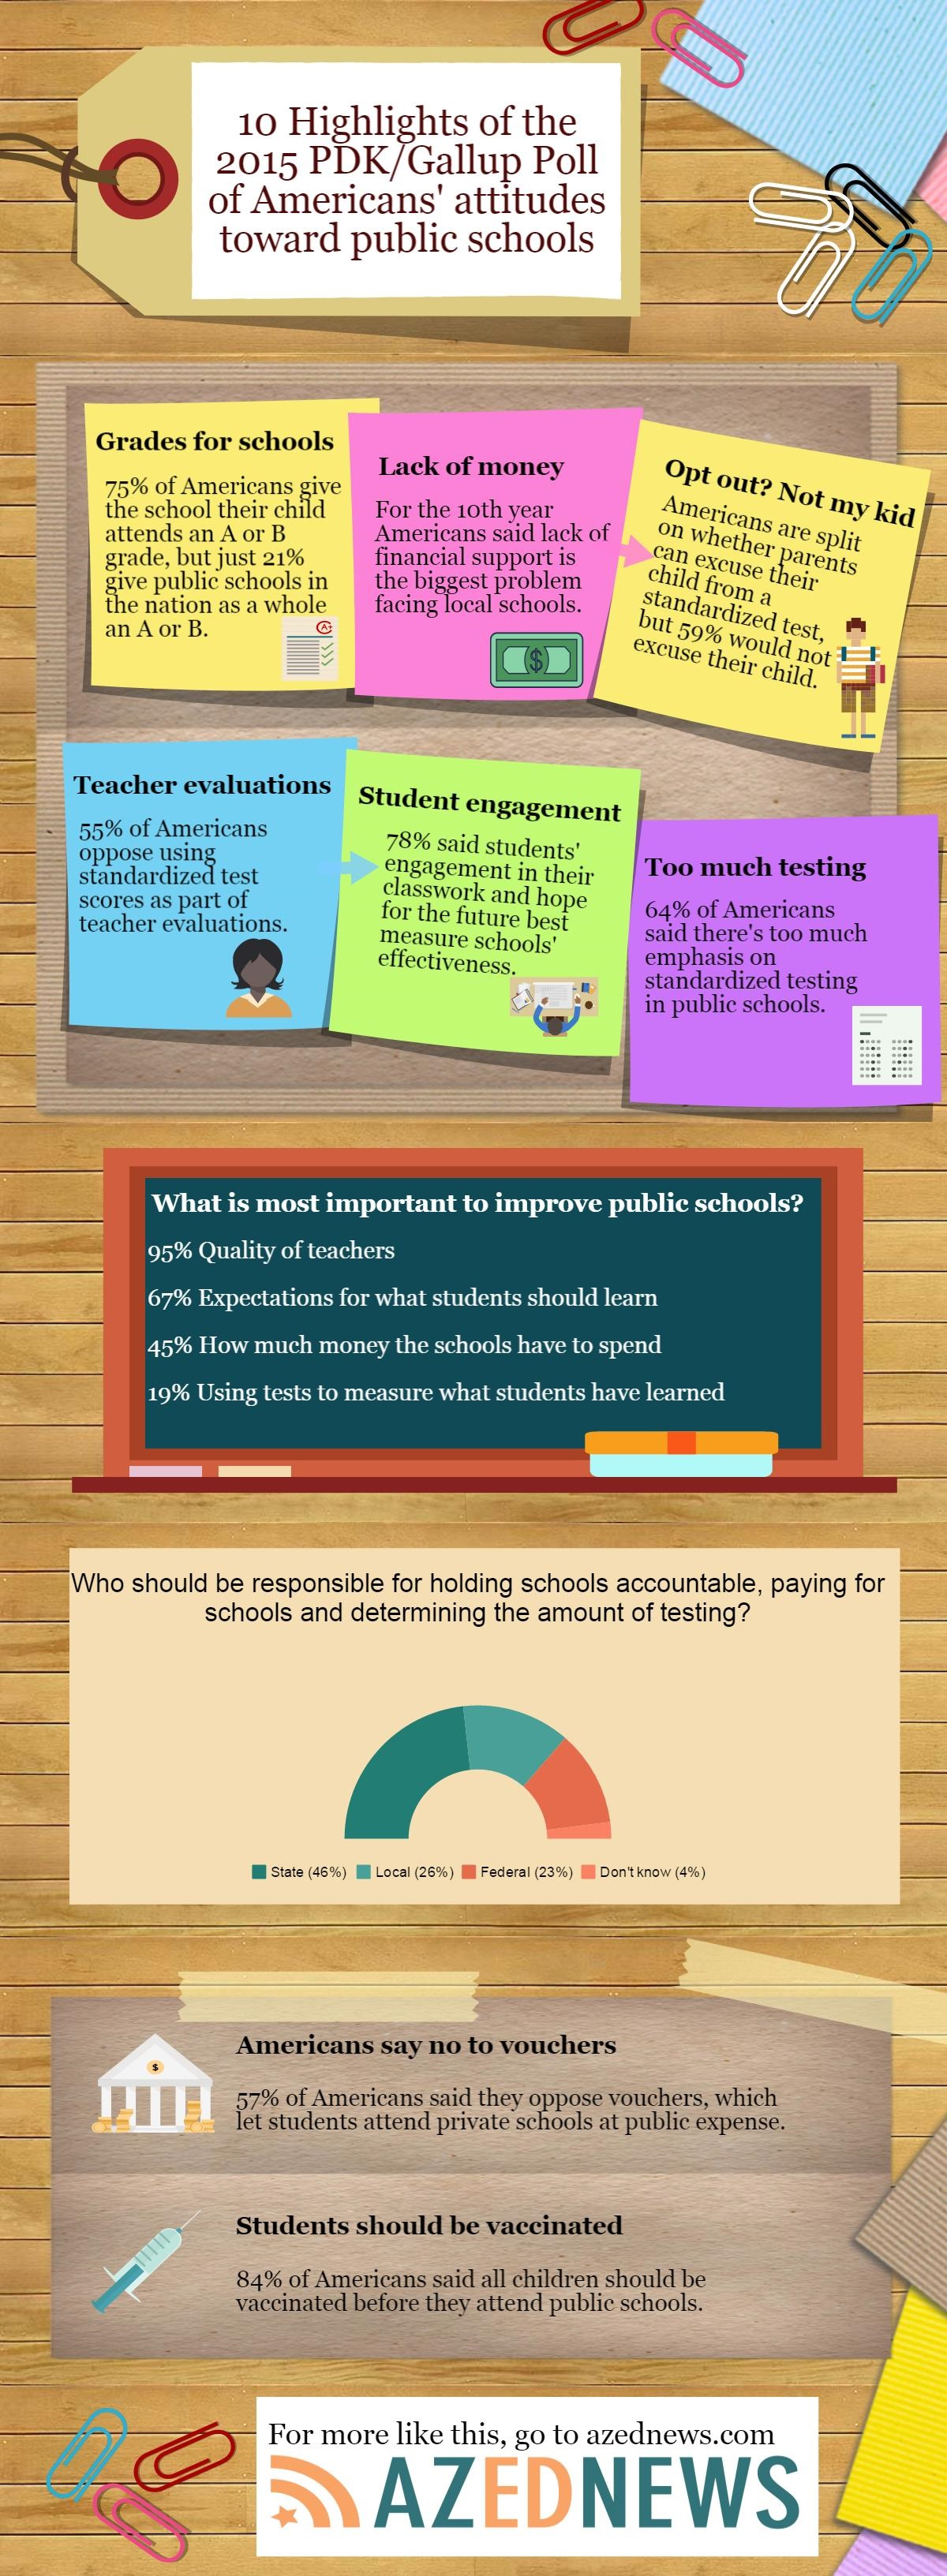 10 highlights of the 2015 PDK/Gallup Poll of Americans' attitudes toward public schools PDK-Gallup-Poll-August-2015-Infographic-4